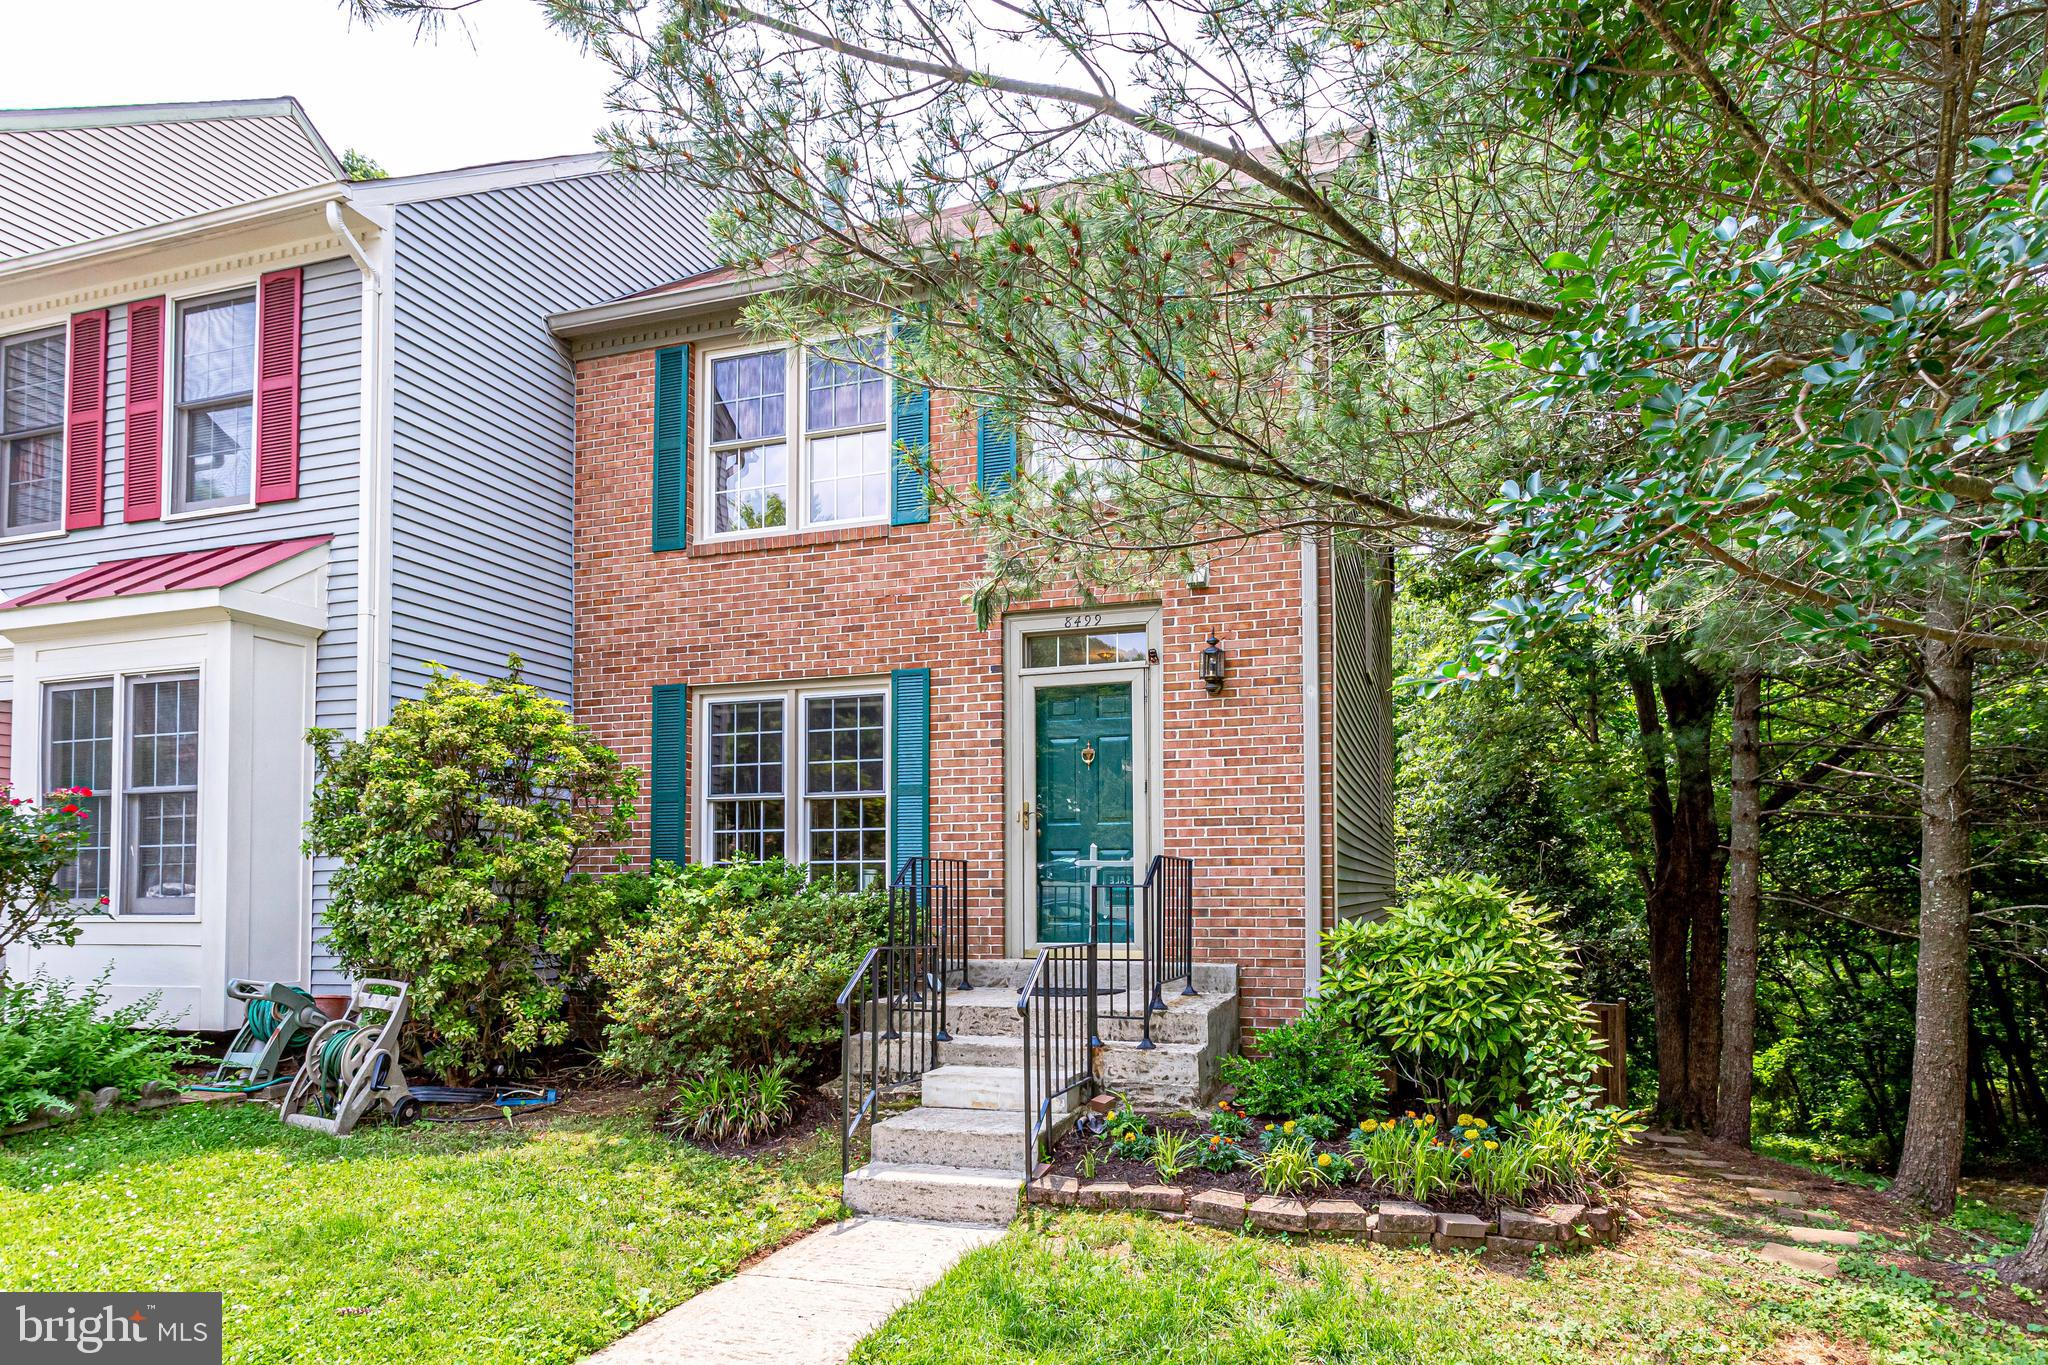 OPEN HOUSE 1-4 PM Sunday, June 9. End unit private townhome with high-end upgrades throughout will make you feel right at home. When you walk in, you see the luxuriously updated kitchen with new white cabinets, desirable quartz countertops, newer stainless appliances and plenty of space for a chef to create a culinary masterpiece. Open concept provides comfortable space flooded with an ample of natural light from the great windows only corner unit can afford. The living room's centerpiece is the wood burning fireplace. Walk onto your private deck to enjoy the view of nature and breathe in air from various trees that surround the property. Main level, staircase, and upper level crown beautiful high-quality hardwood floors. The master bedroom is located upstairs towards the back of the home with its own updated en-suite master bathroom. Tall ceilings and his and her closets make it a grand master bedroom suite. On the other side of the upper level are two additional sun-filled bedrooms with beautifully updated hall bathroom. The lower level is perfect for an extra hang out space, movie night, or practicing your musical talents. The laundry/utility area is fully finished and can serve as extra storage or it is open enough to turn it into a workout room. You will be nicely surprised by the large size of the full bathroom downstairs. The bricked patio is ready for an awesome time with your friends and family. The community offers tennis courts, basketball courts, playgrounds, and plenty of walking paths. The location of this corner townhome is conveniently located close to I-95, Lorton VRE, Fort Belvoir, many parks, restaurants, and shopping centers. Come see for yourself if this house is your new home!